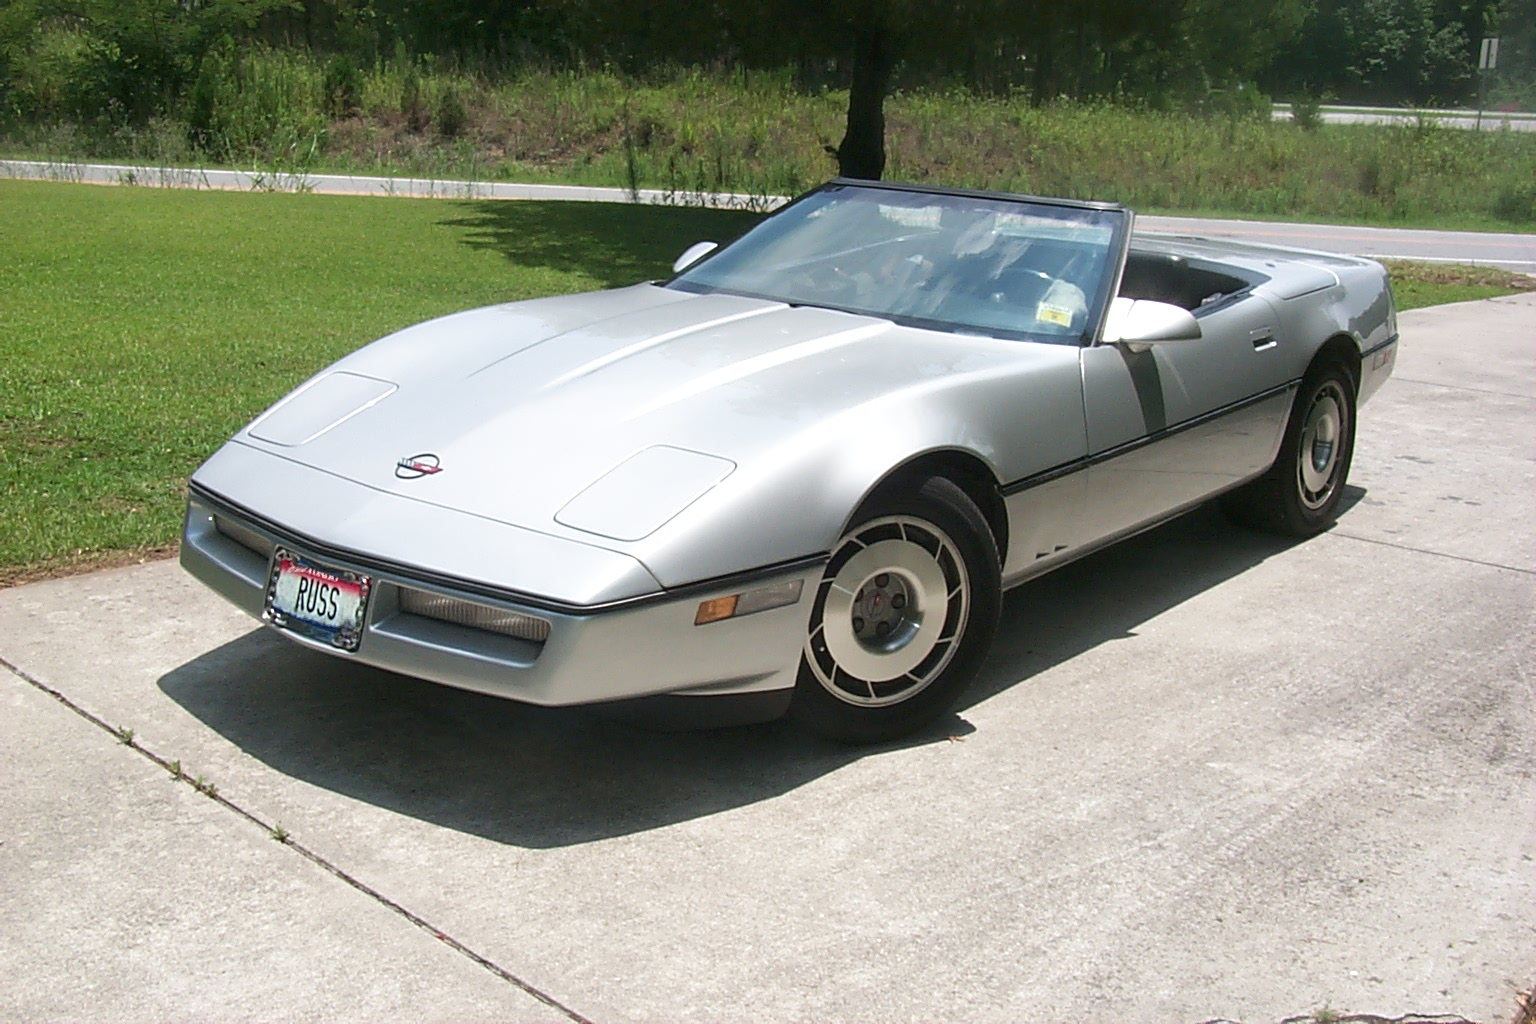 Cars chevrolet corvette c4 convertible 1990